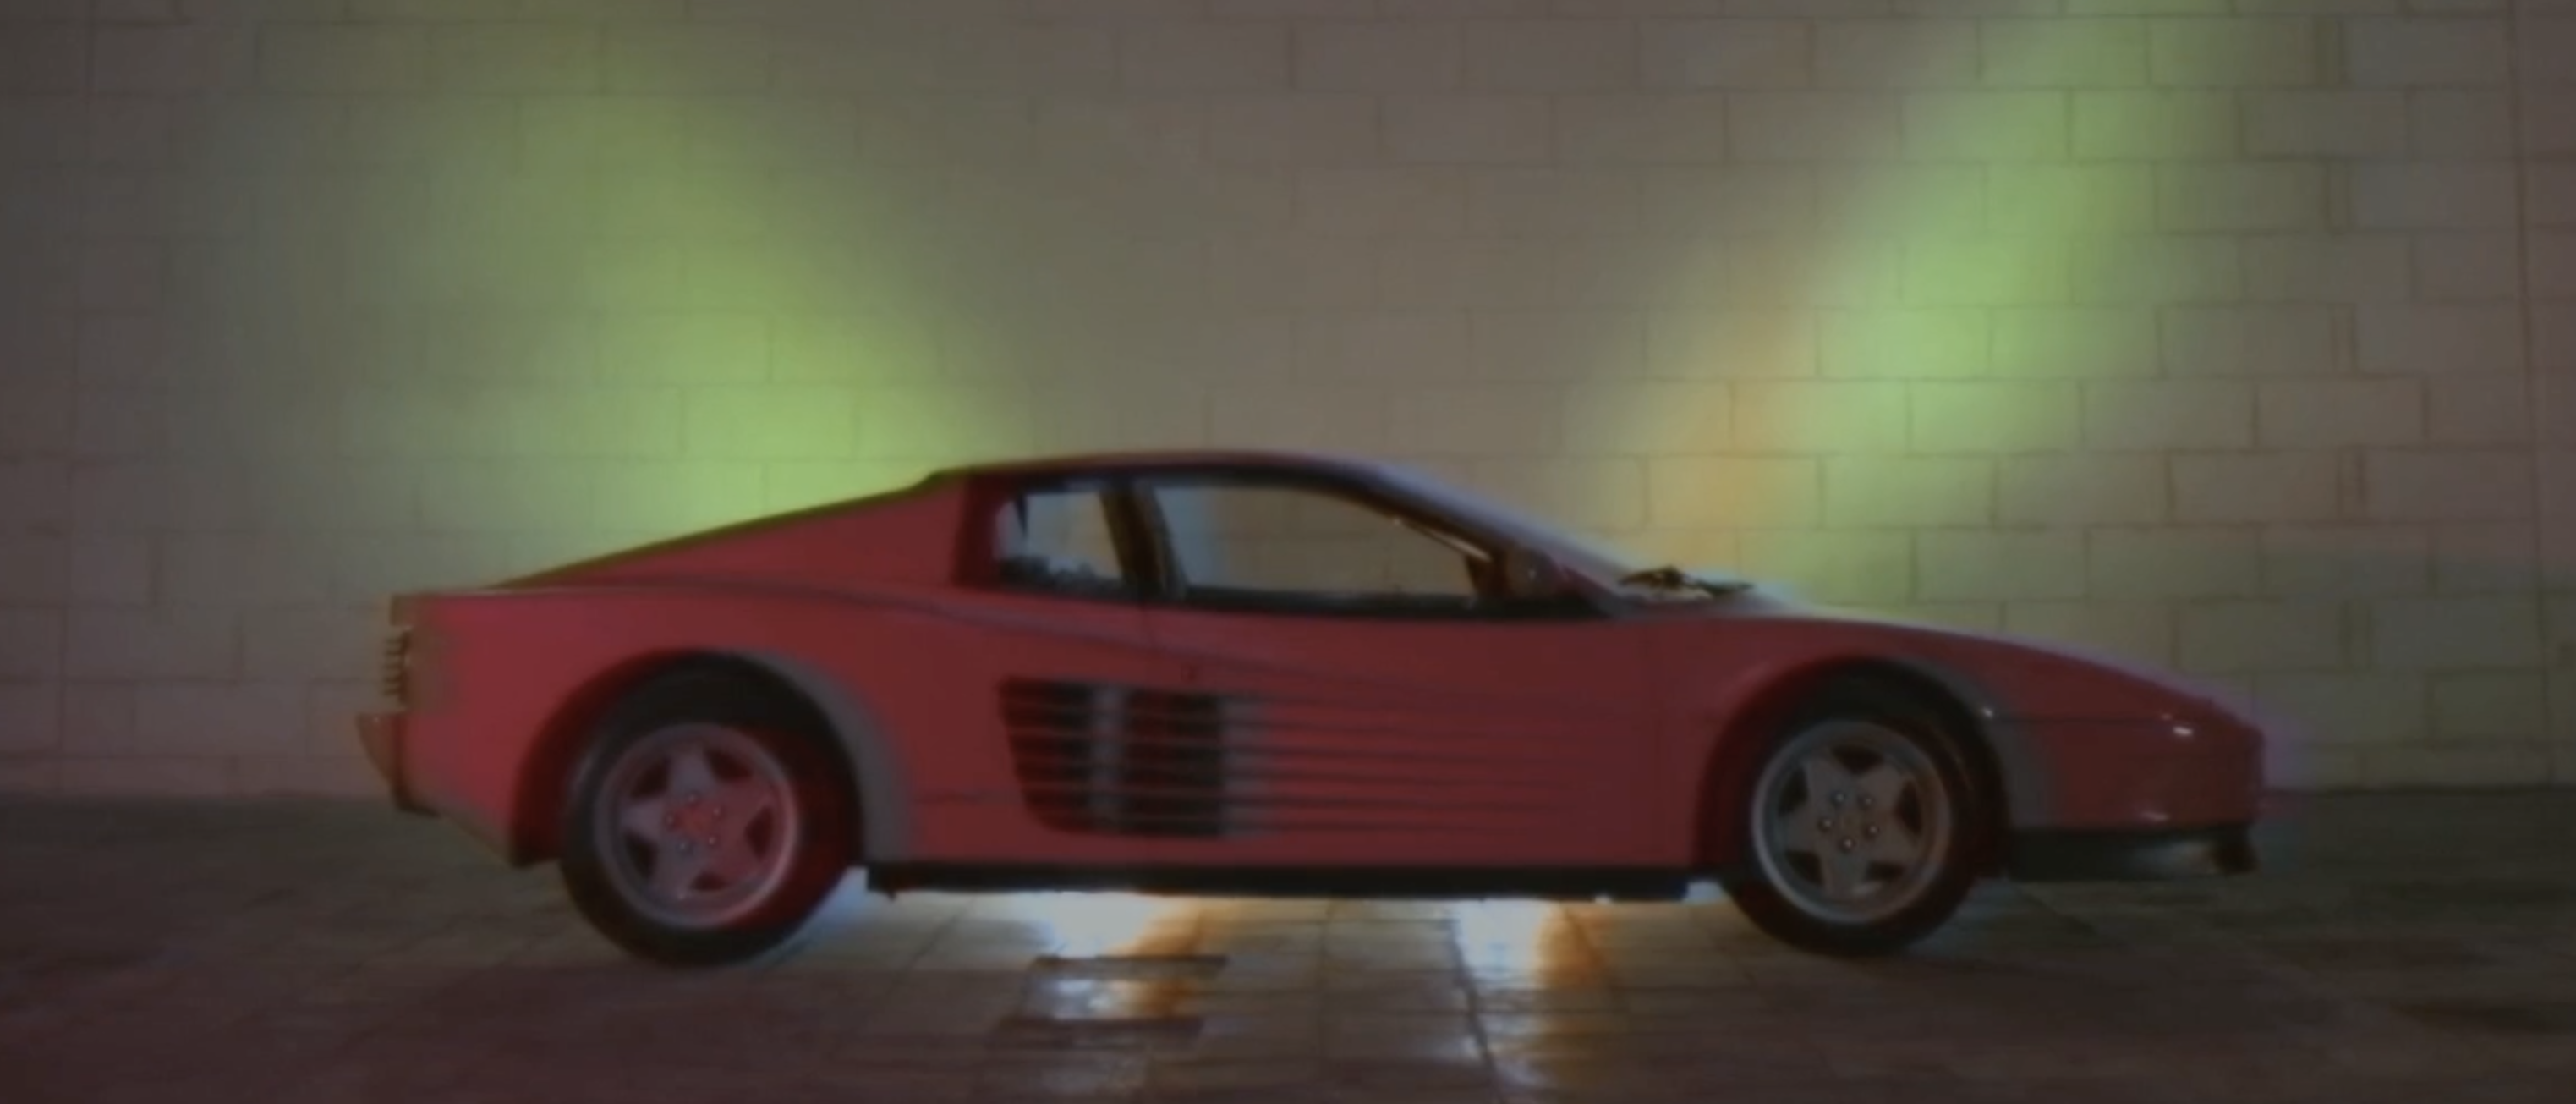 DREAM TOYS FOR BOYS: FERRARI TESTAROSSA.